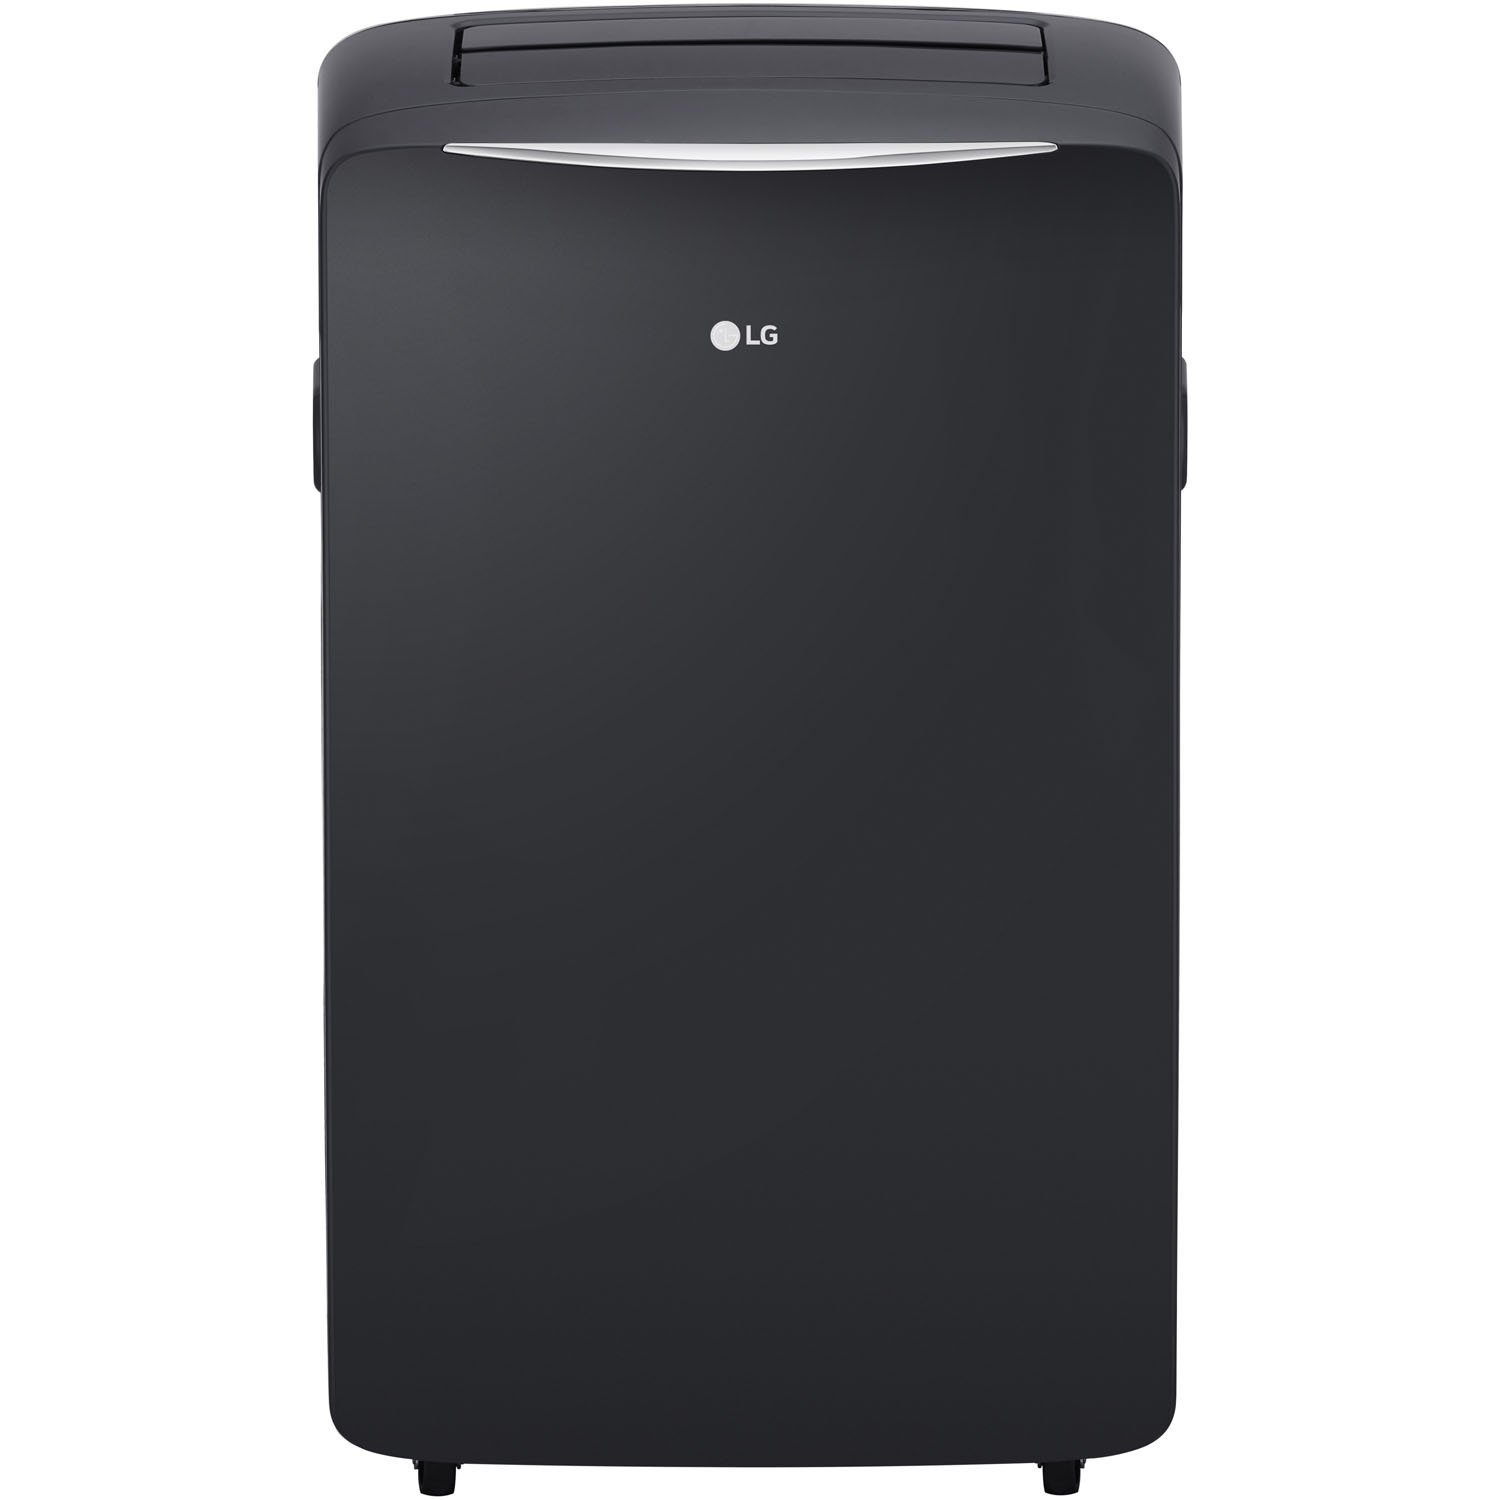 LG LP1417GSR 115V Portable Air Conditioner with Remote Control in Graphite Gray for Rooms up to 400-Sq. Ft. (Certified Refurbished)